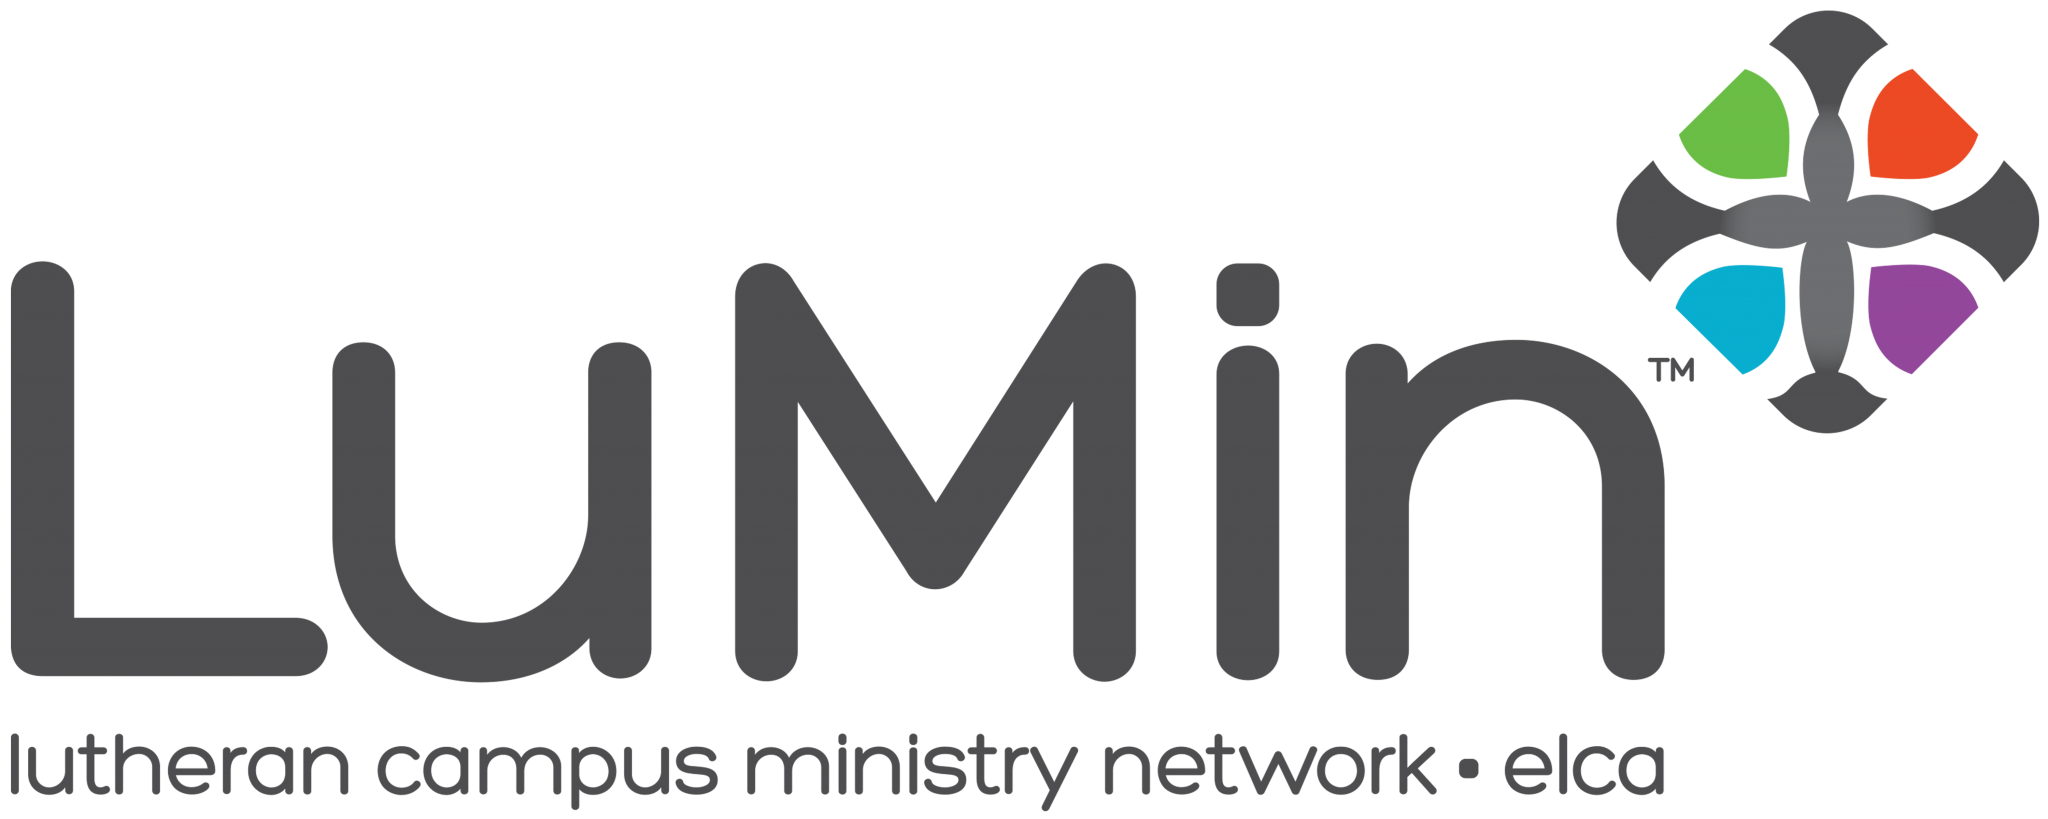 Lumin brand identity lutheran. Png files for print